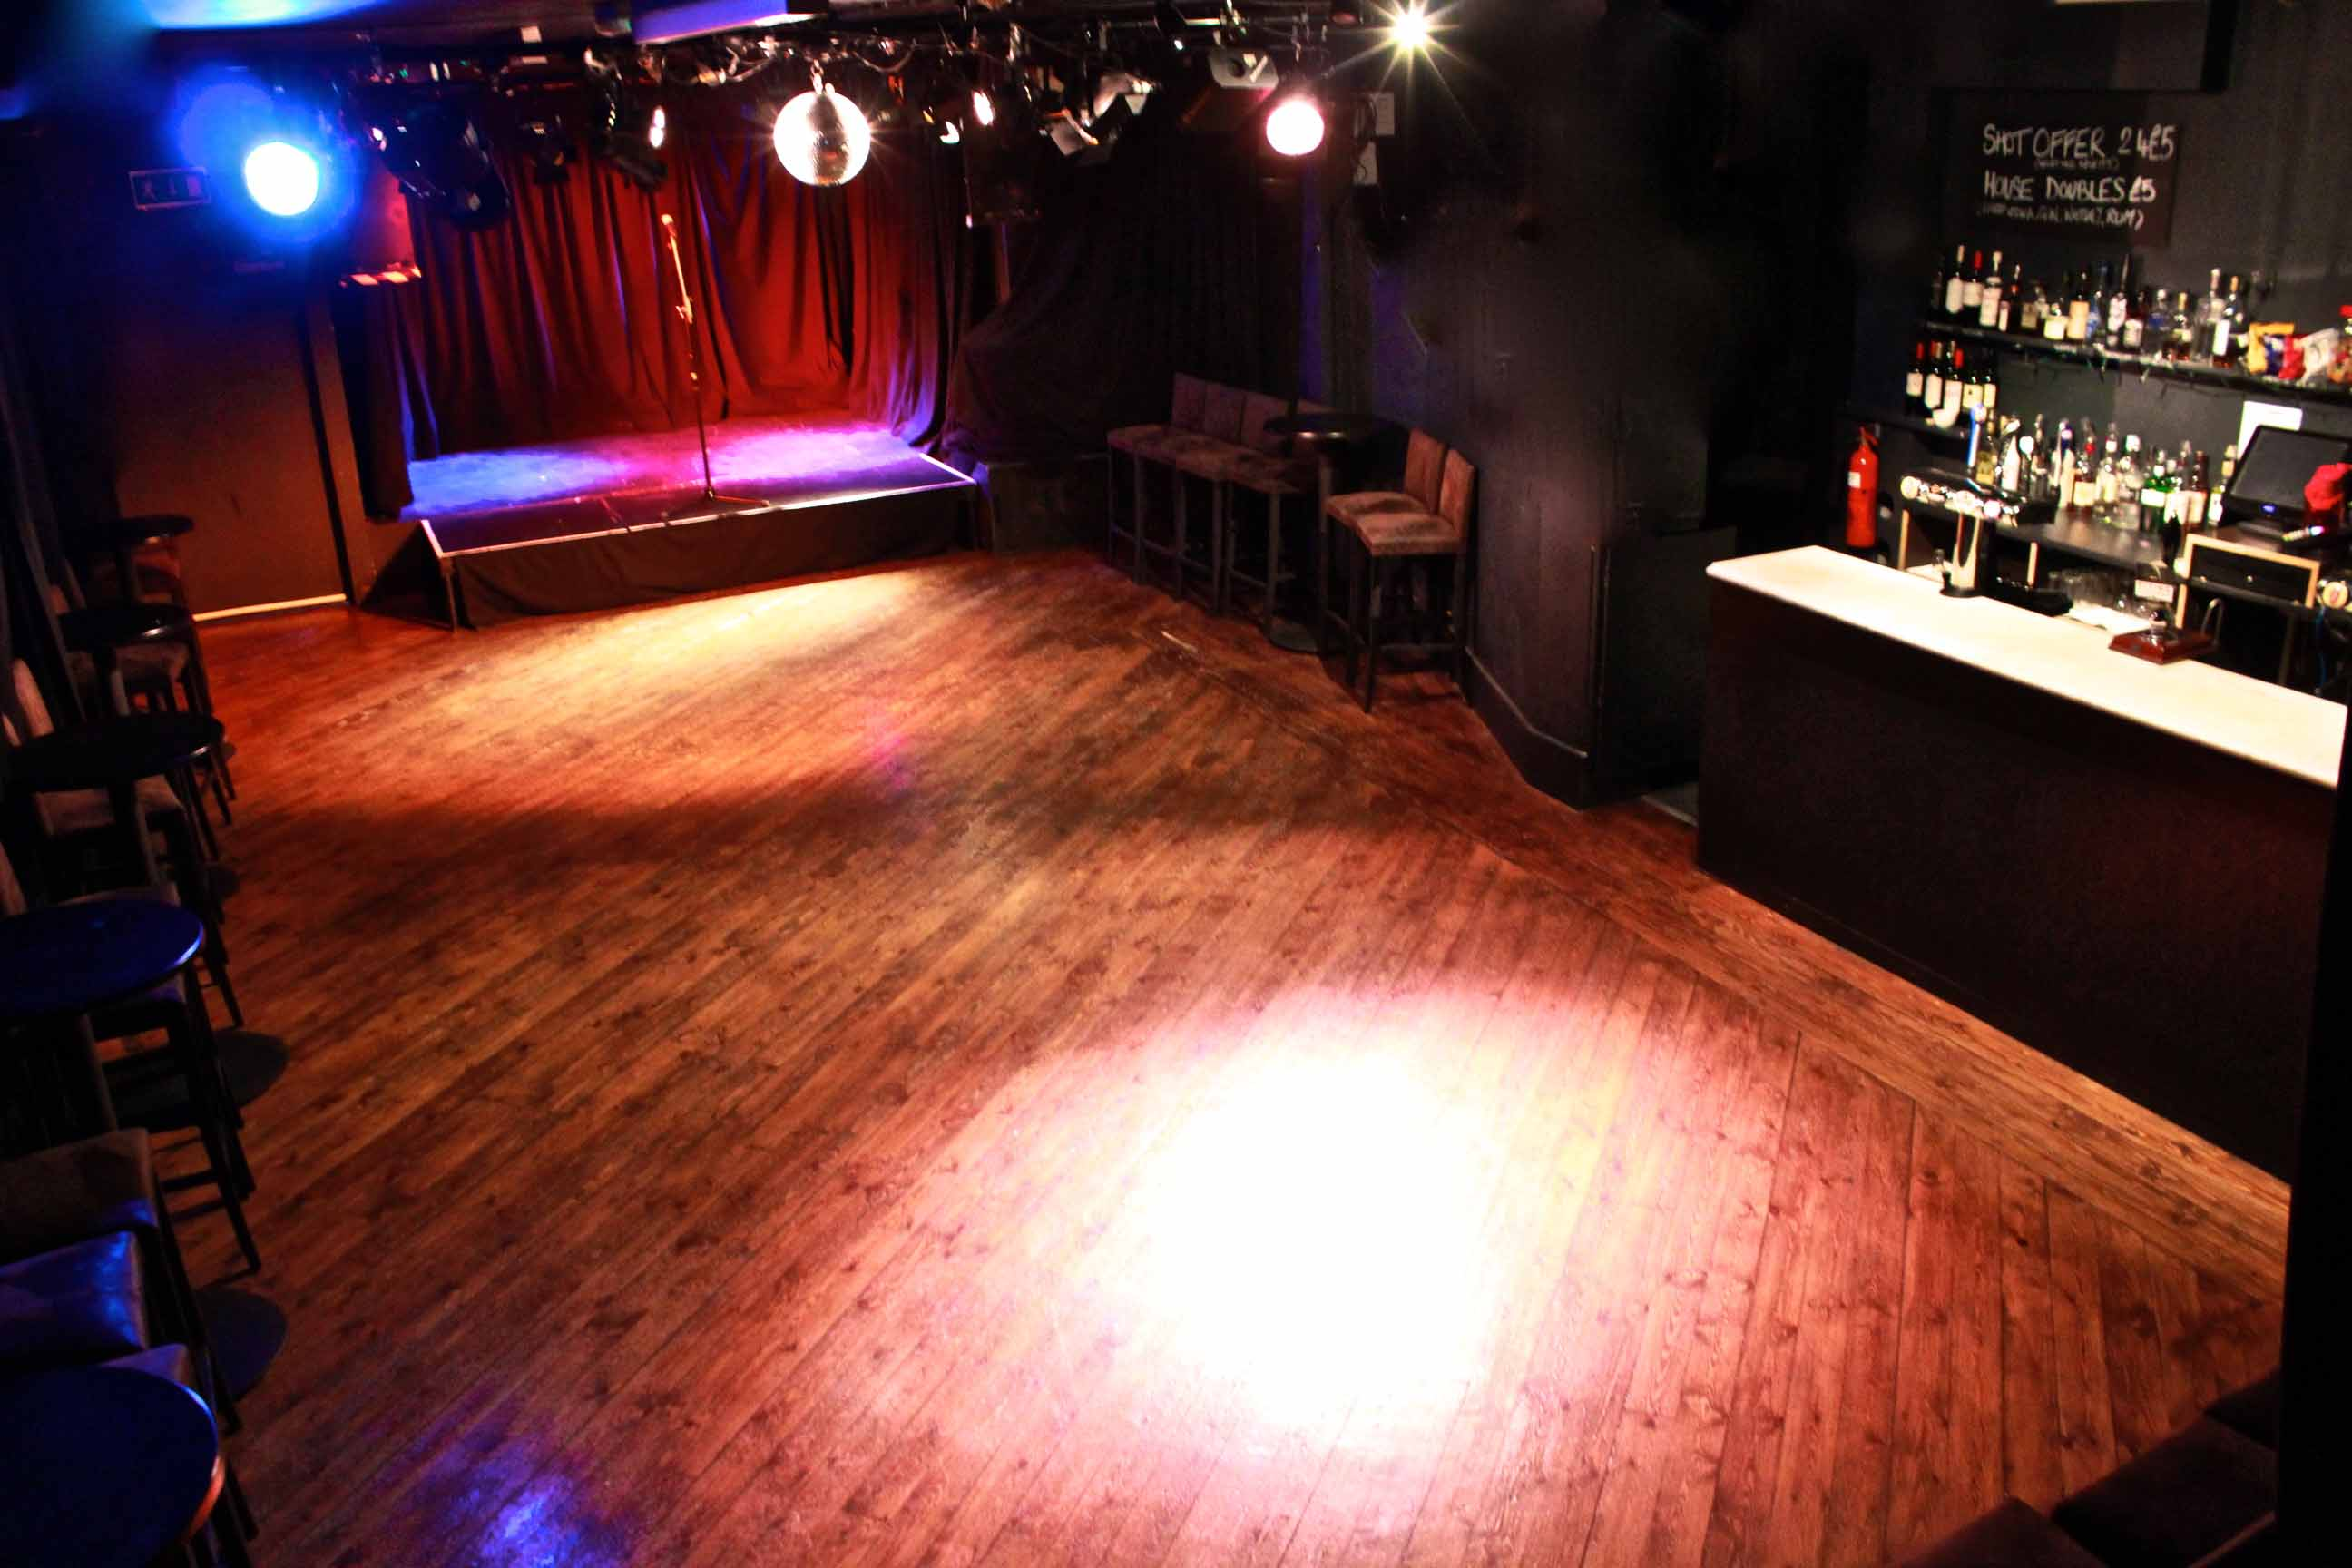 (from above) interior of the Komedia studio, without seating. stage lit up in red and purple